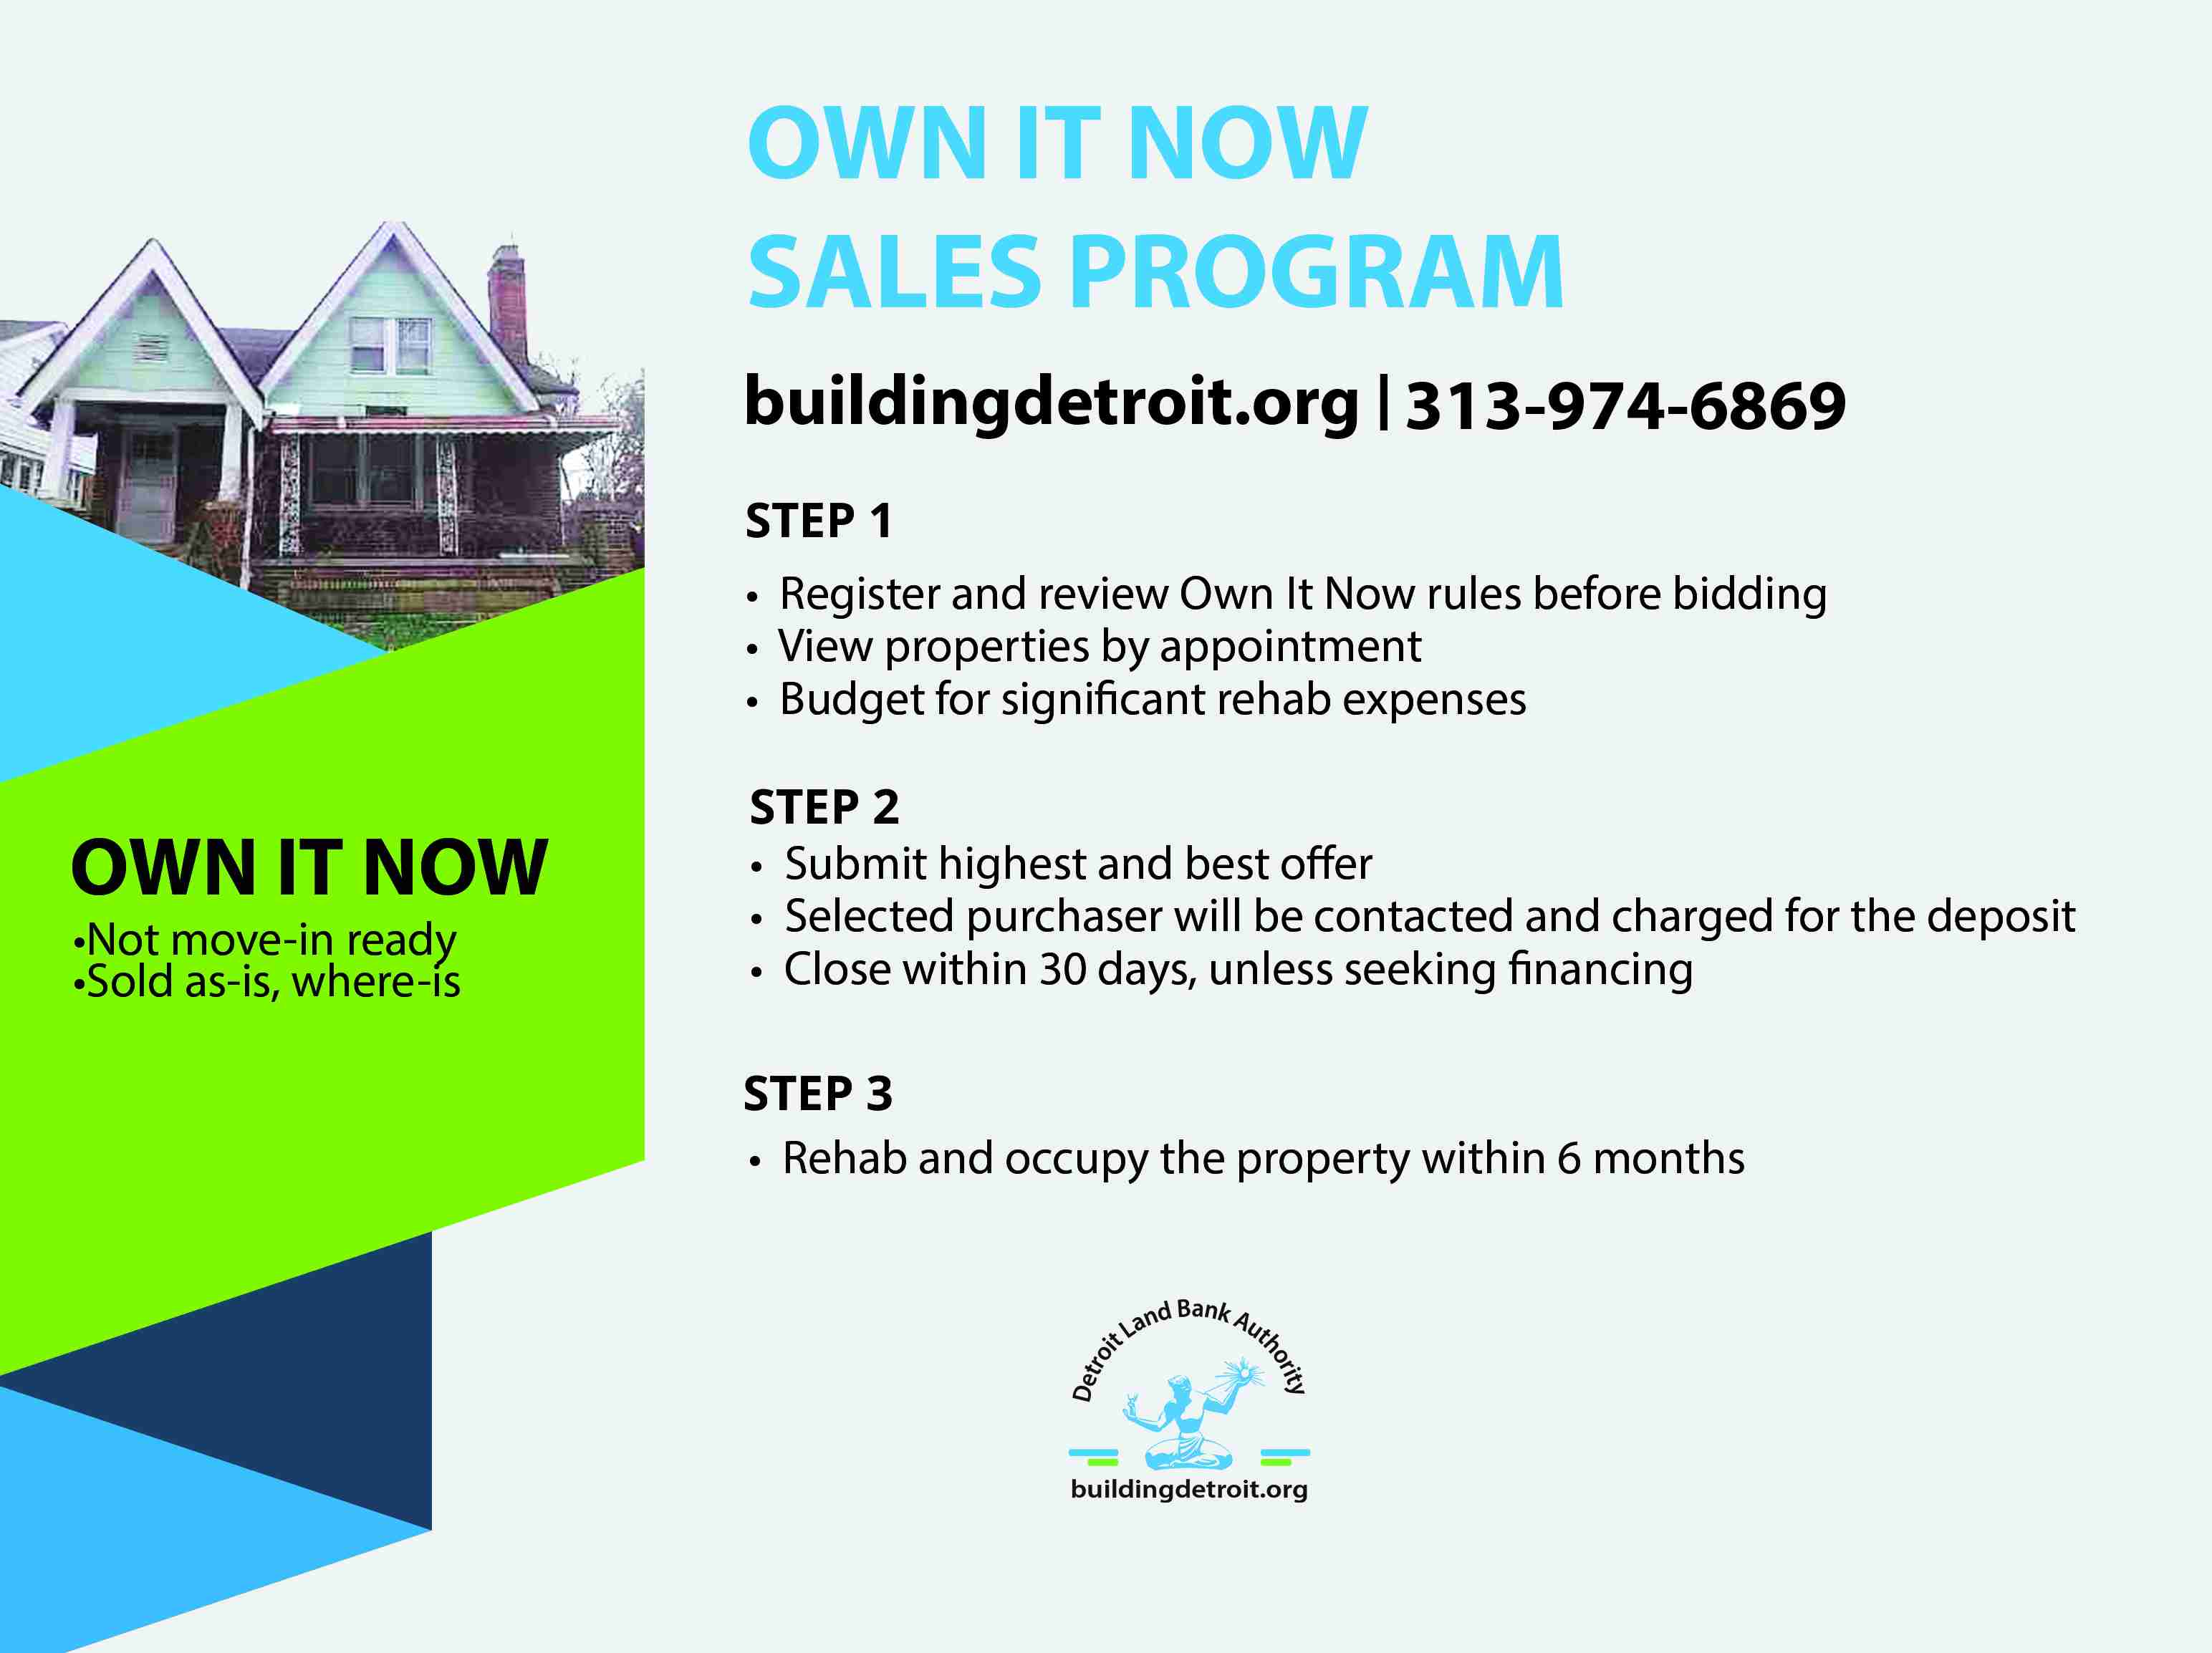 OWN IT NOW 020919 zillow PSD .jpg